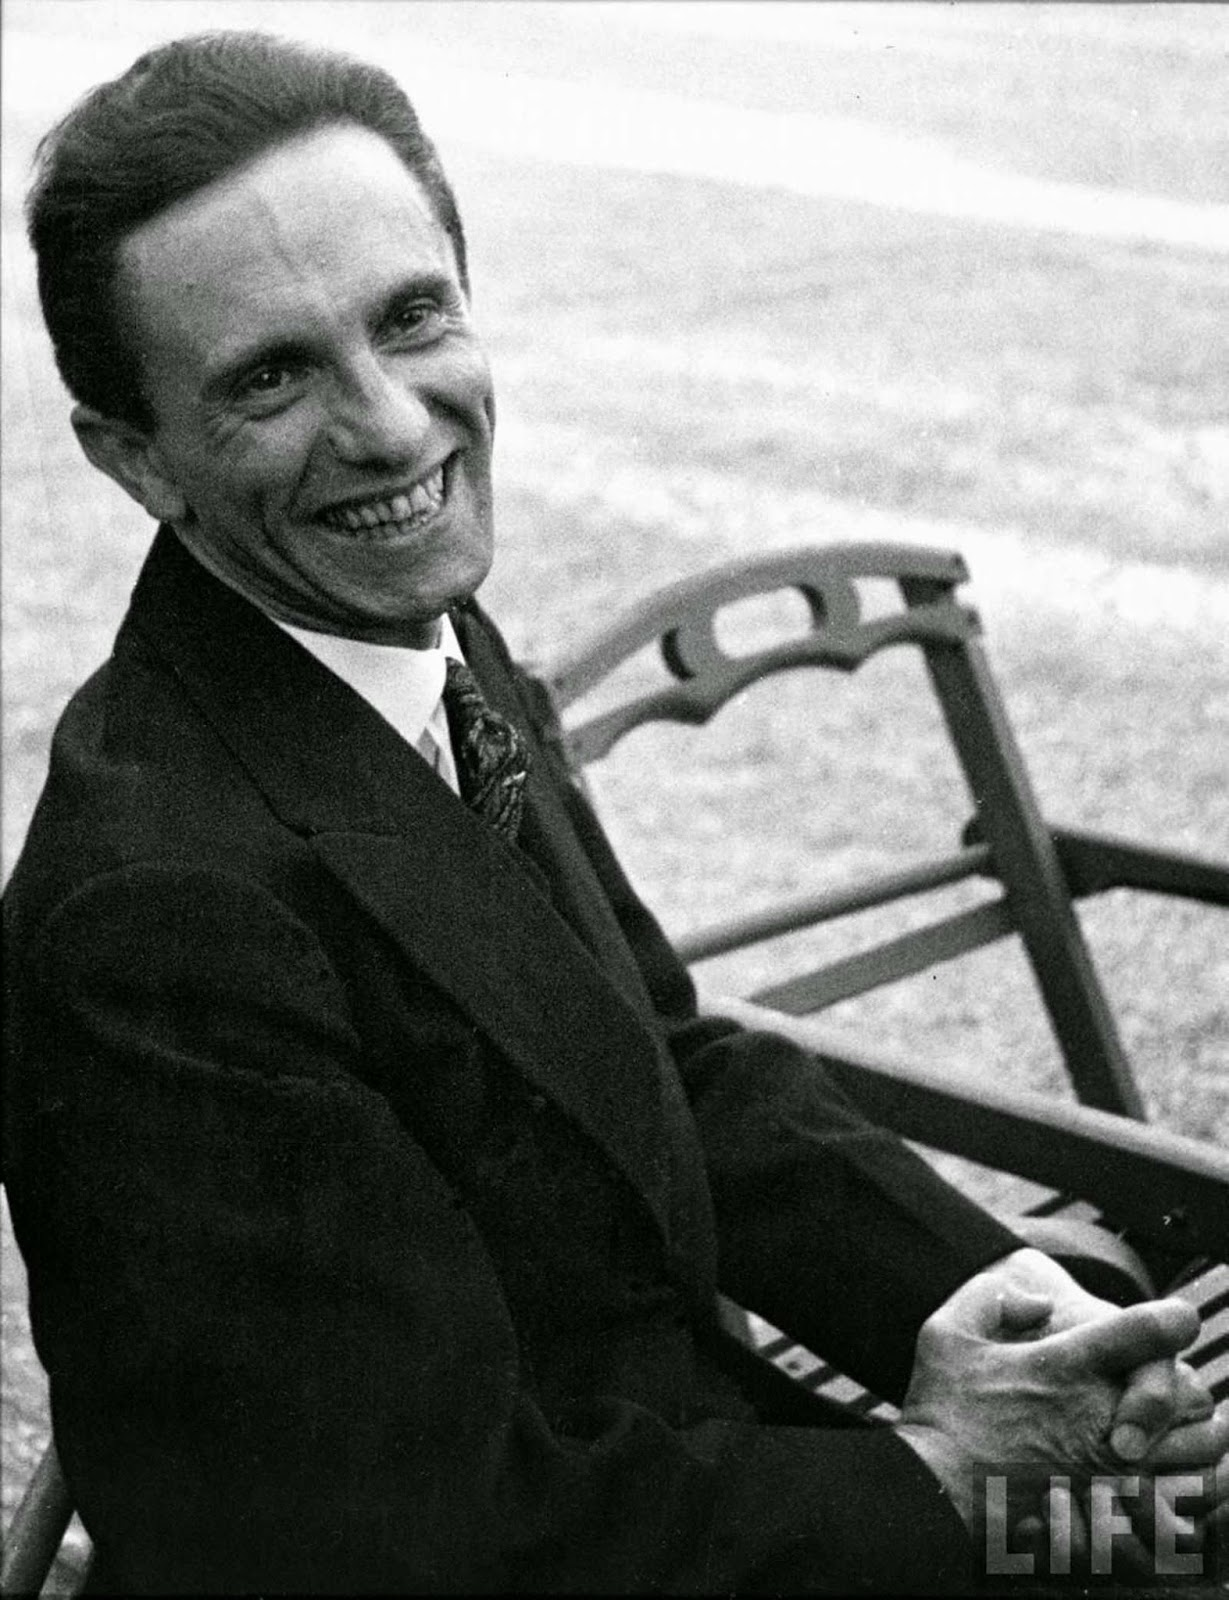 At first, Goebbels indulged Eisenstaedt with a few photographs, showing him in a much more pleasant, if not jovial mood.